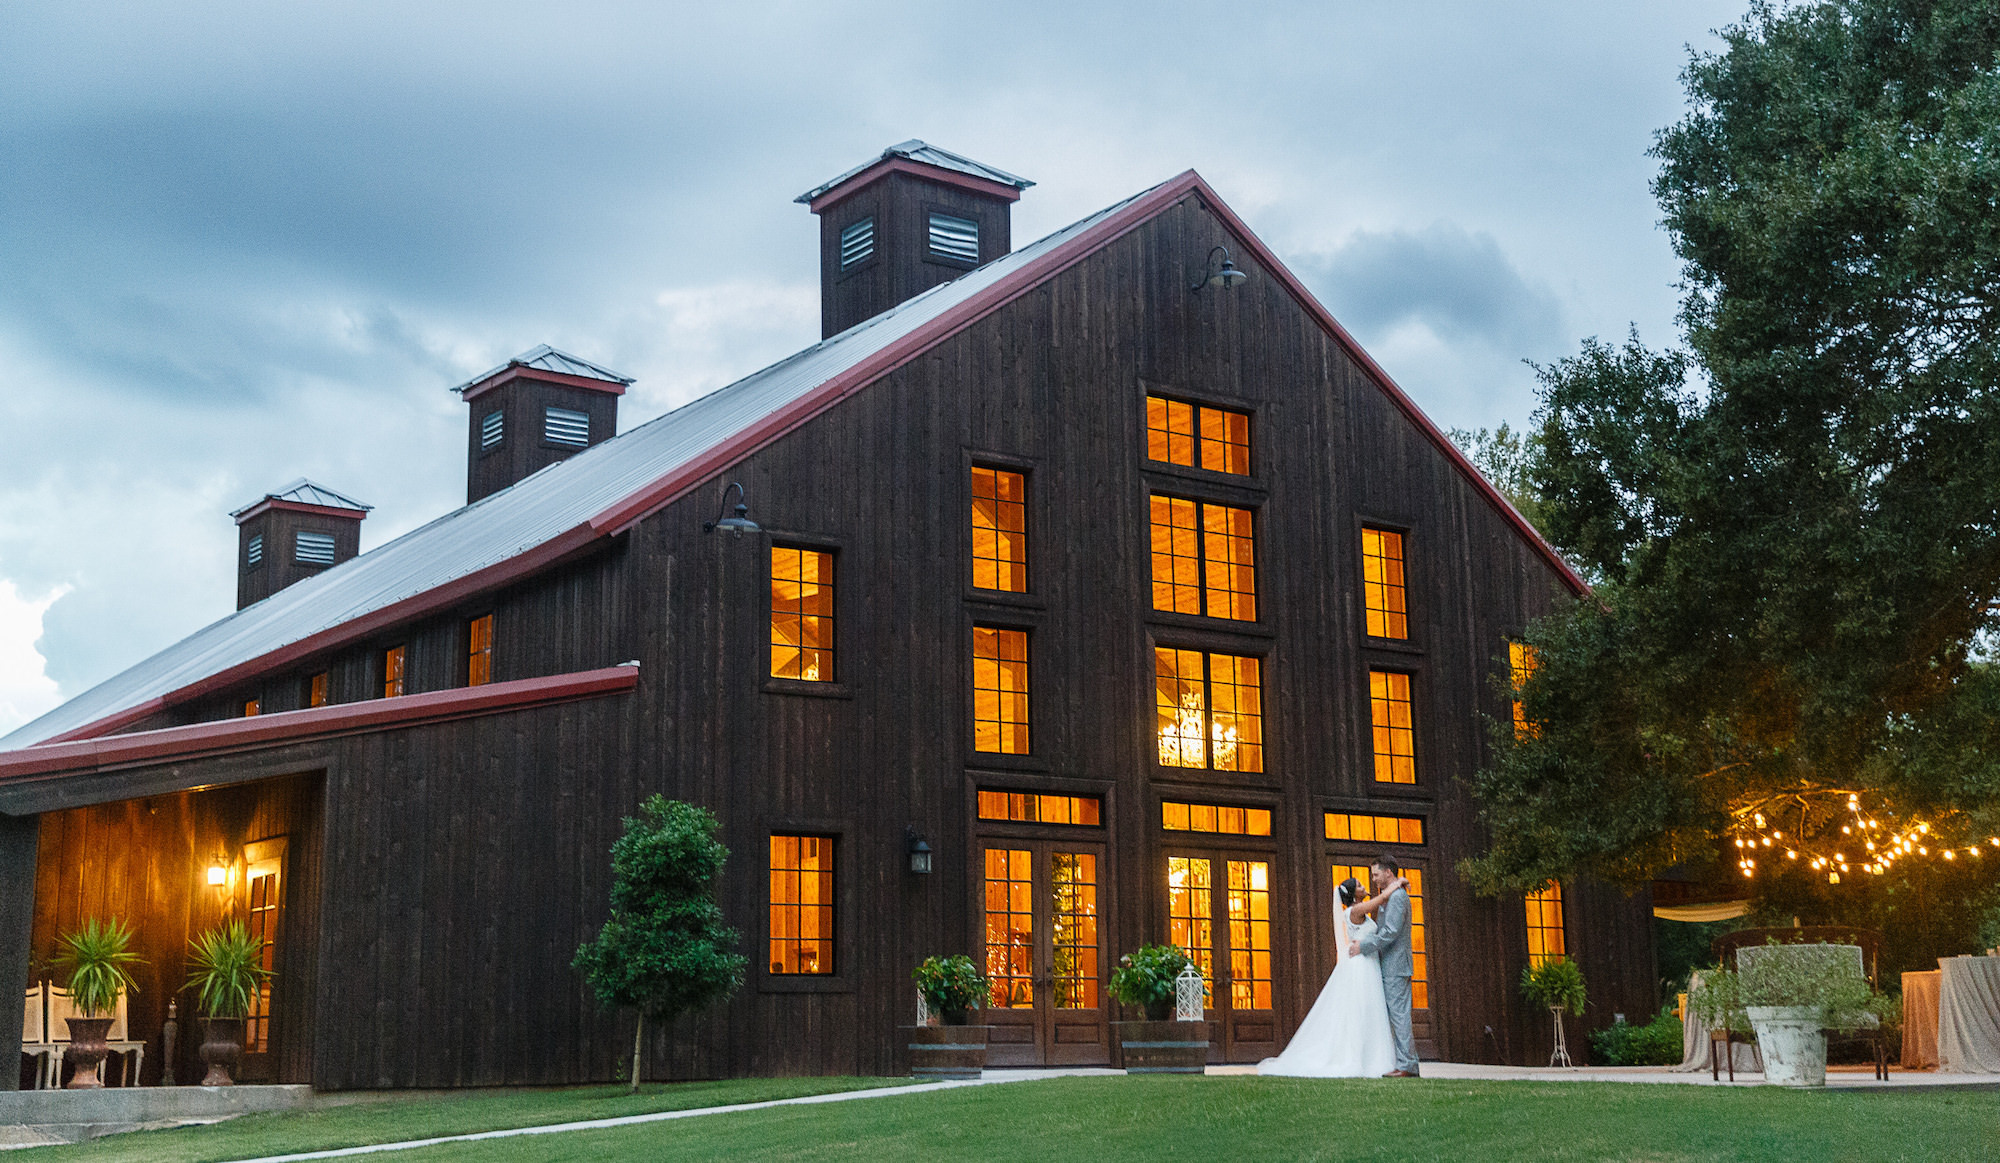 The carriage house houston a rustic elegant barn wedding venue outside houston texasg junglespirit Image collections